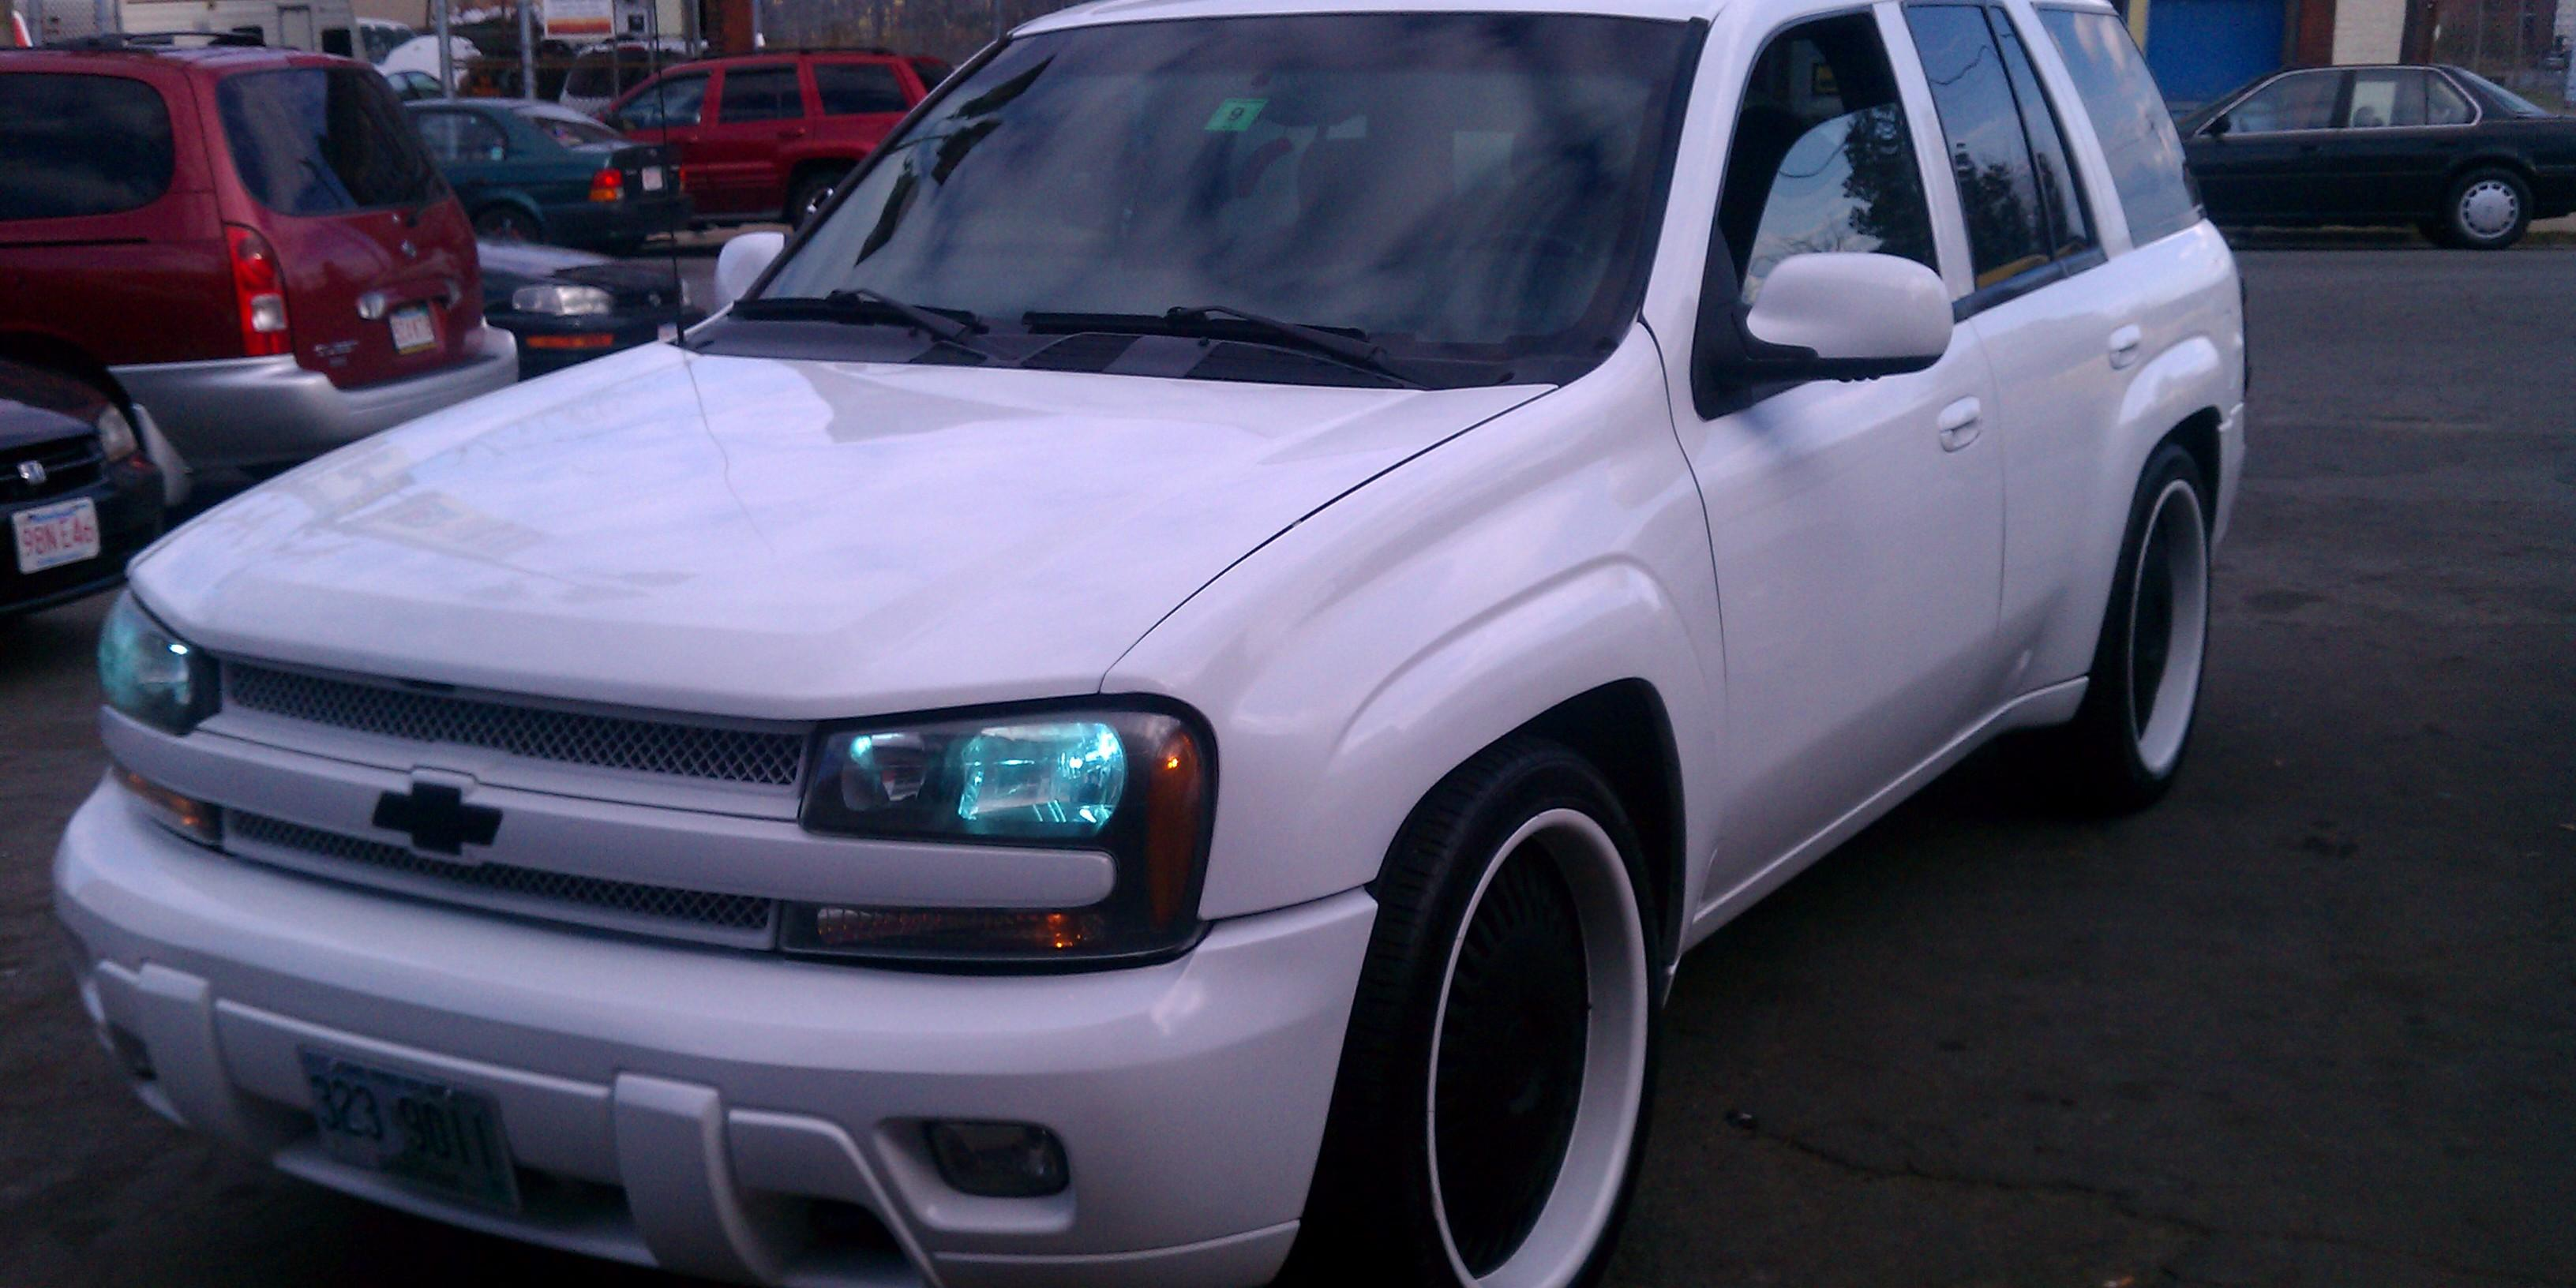 Used Chevrolet Tahoe For Sale  CarGurus